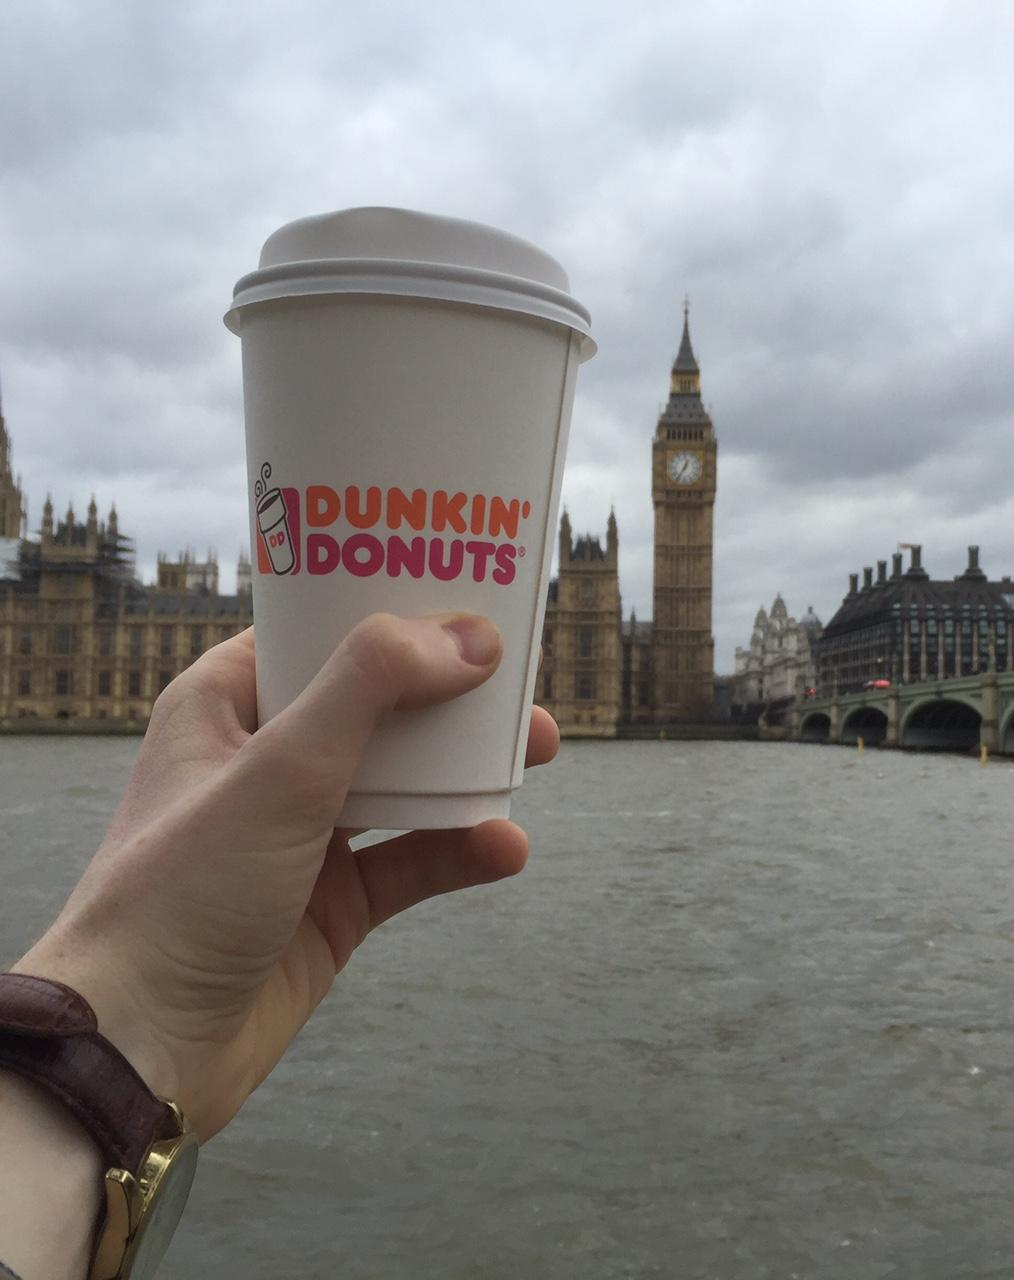 Dunkin Donuts exists across the pond — but it isn't all that different.